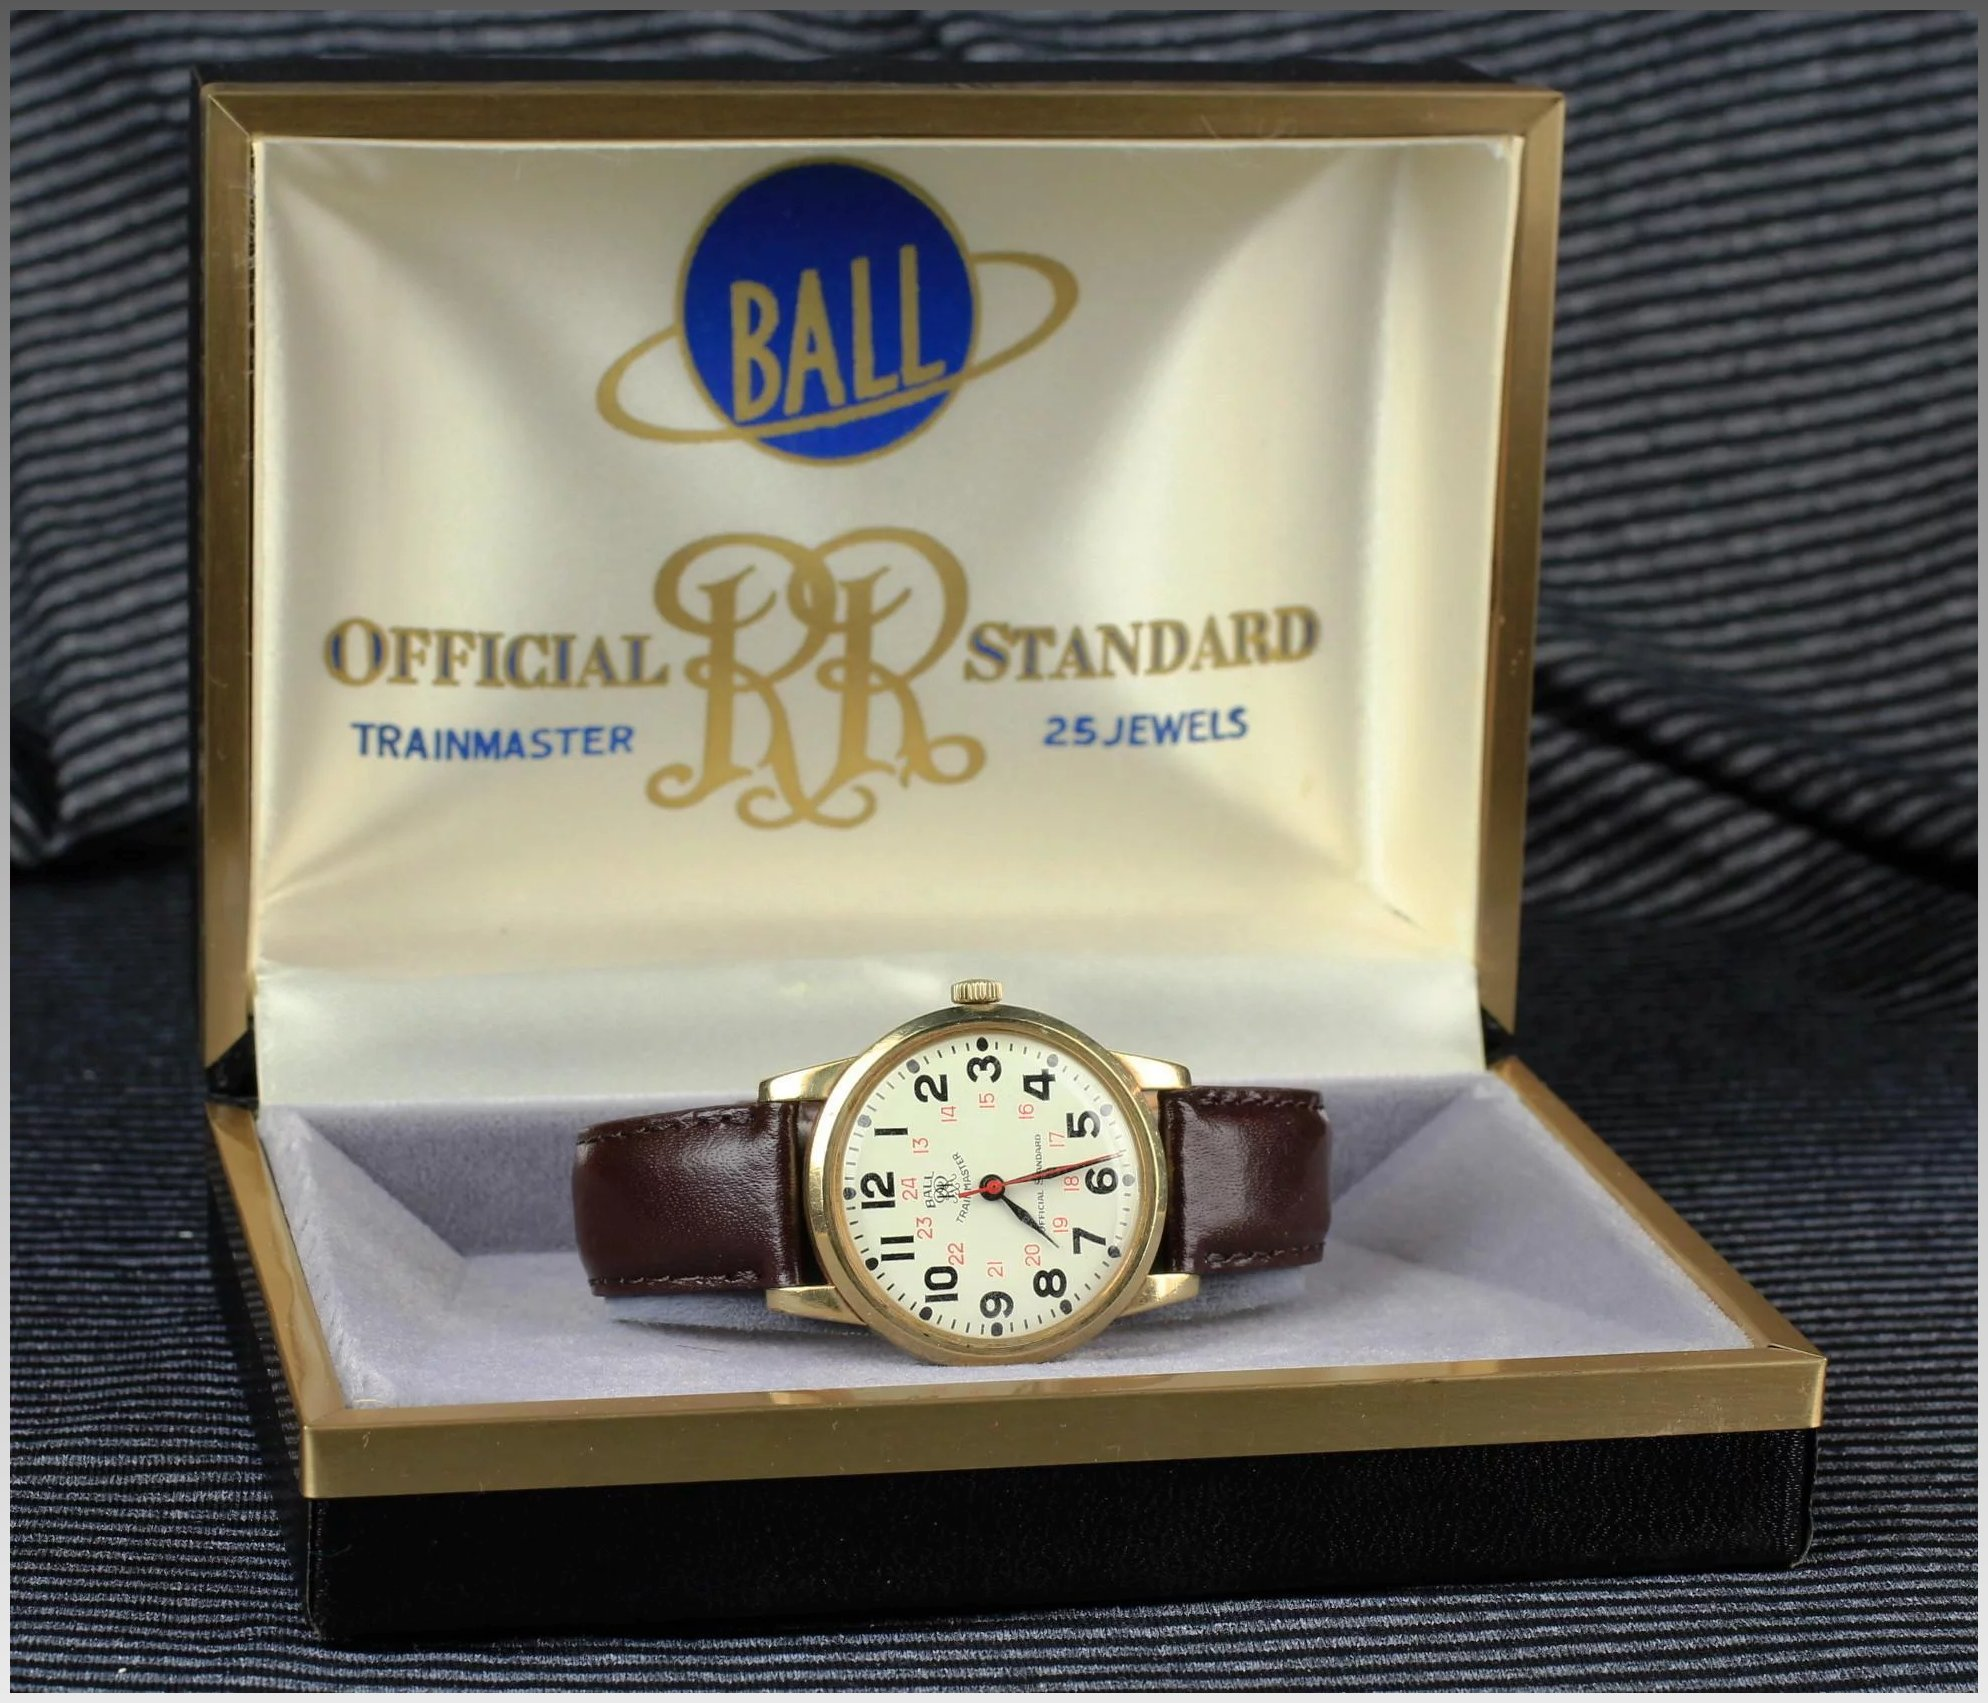 standard official storm pre watch chaser owned company l fireman ball watches bk